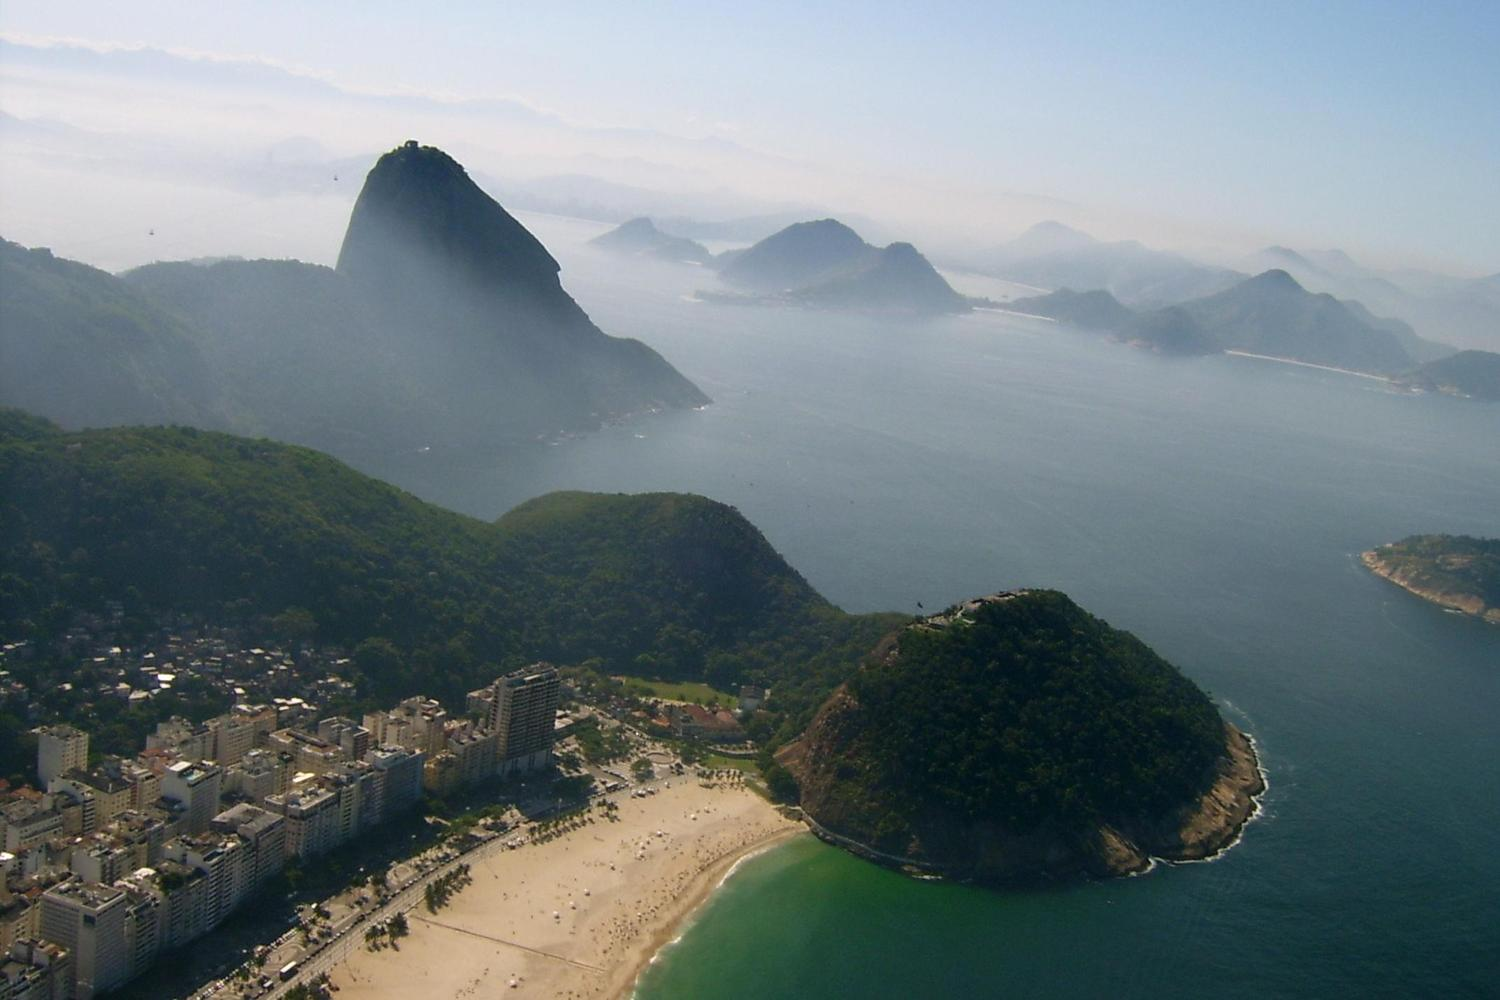 Aerial view of Copacabana beach and sugarloaf mountain beyond